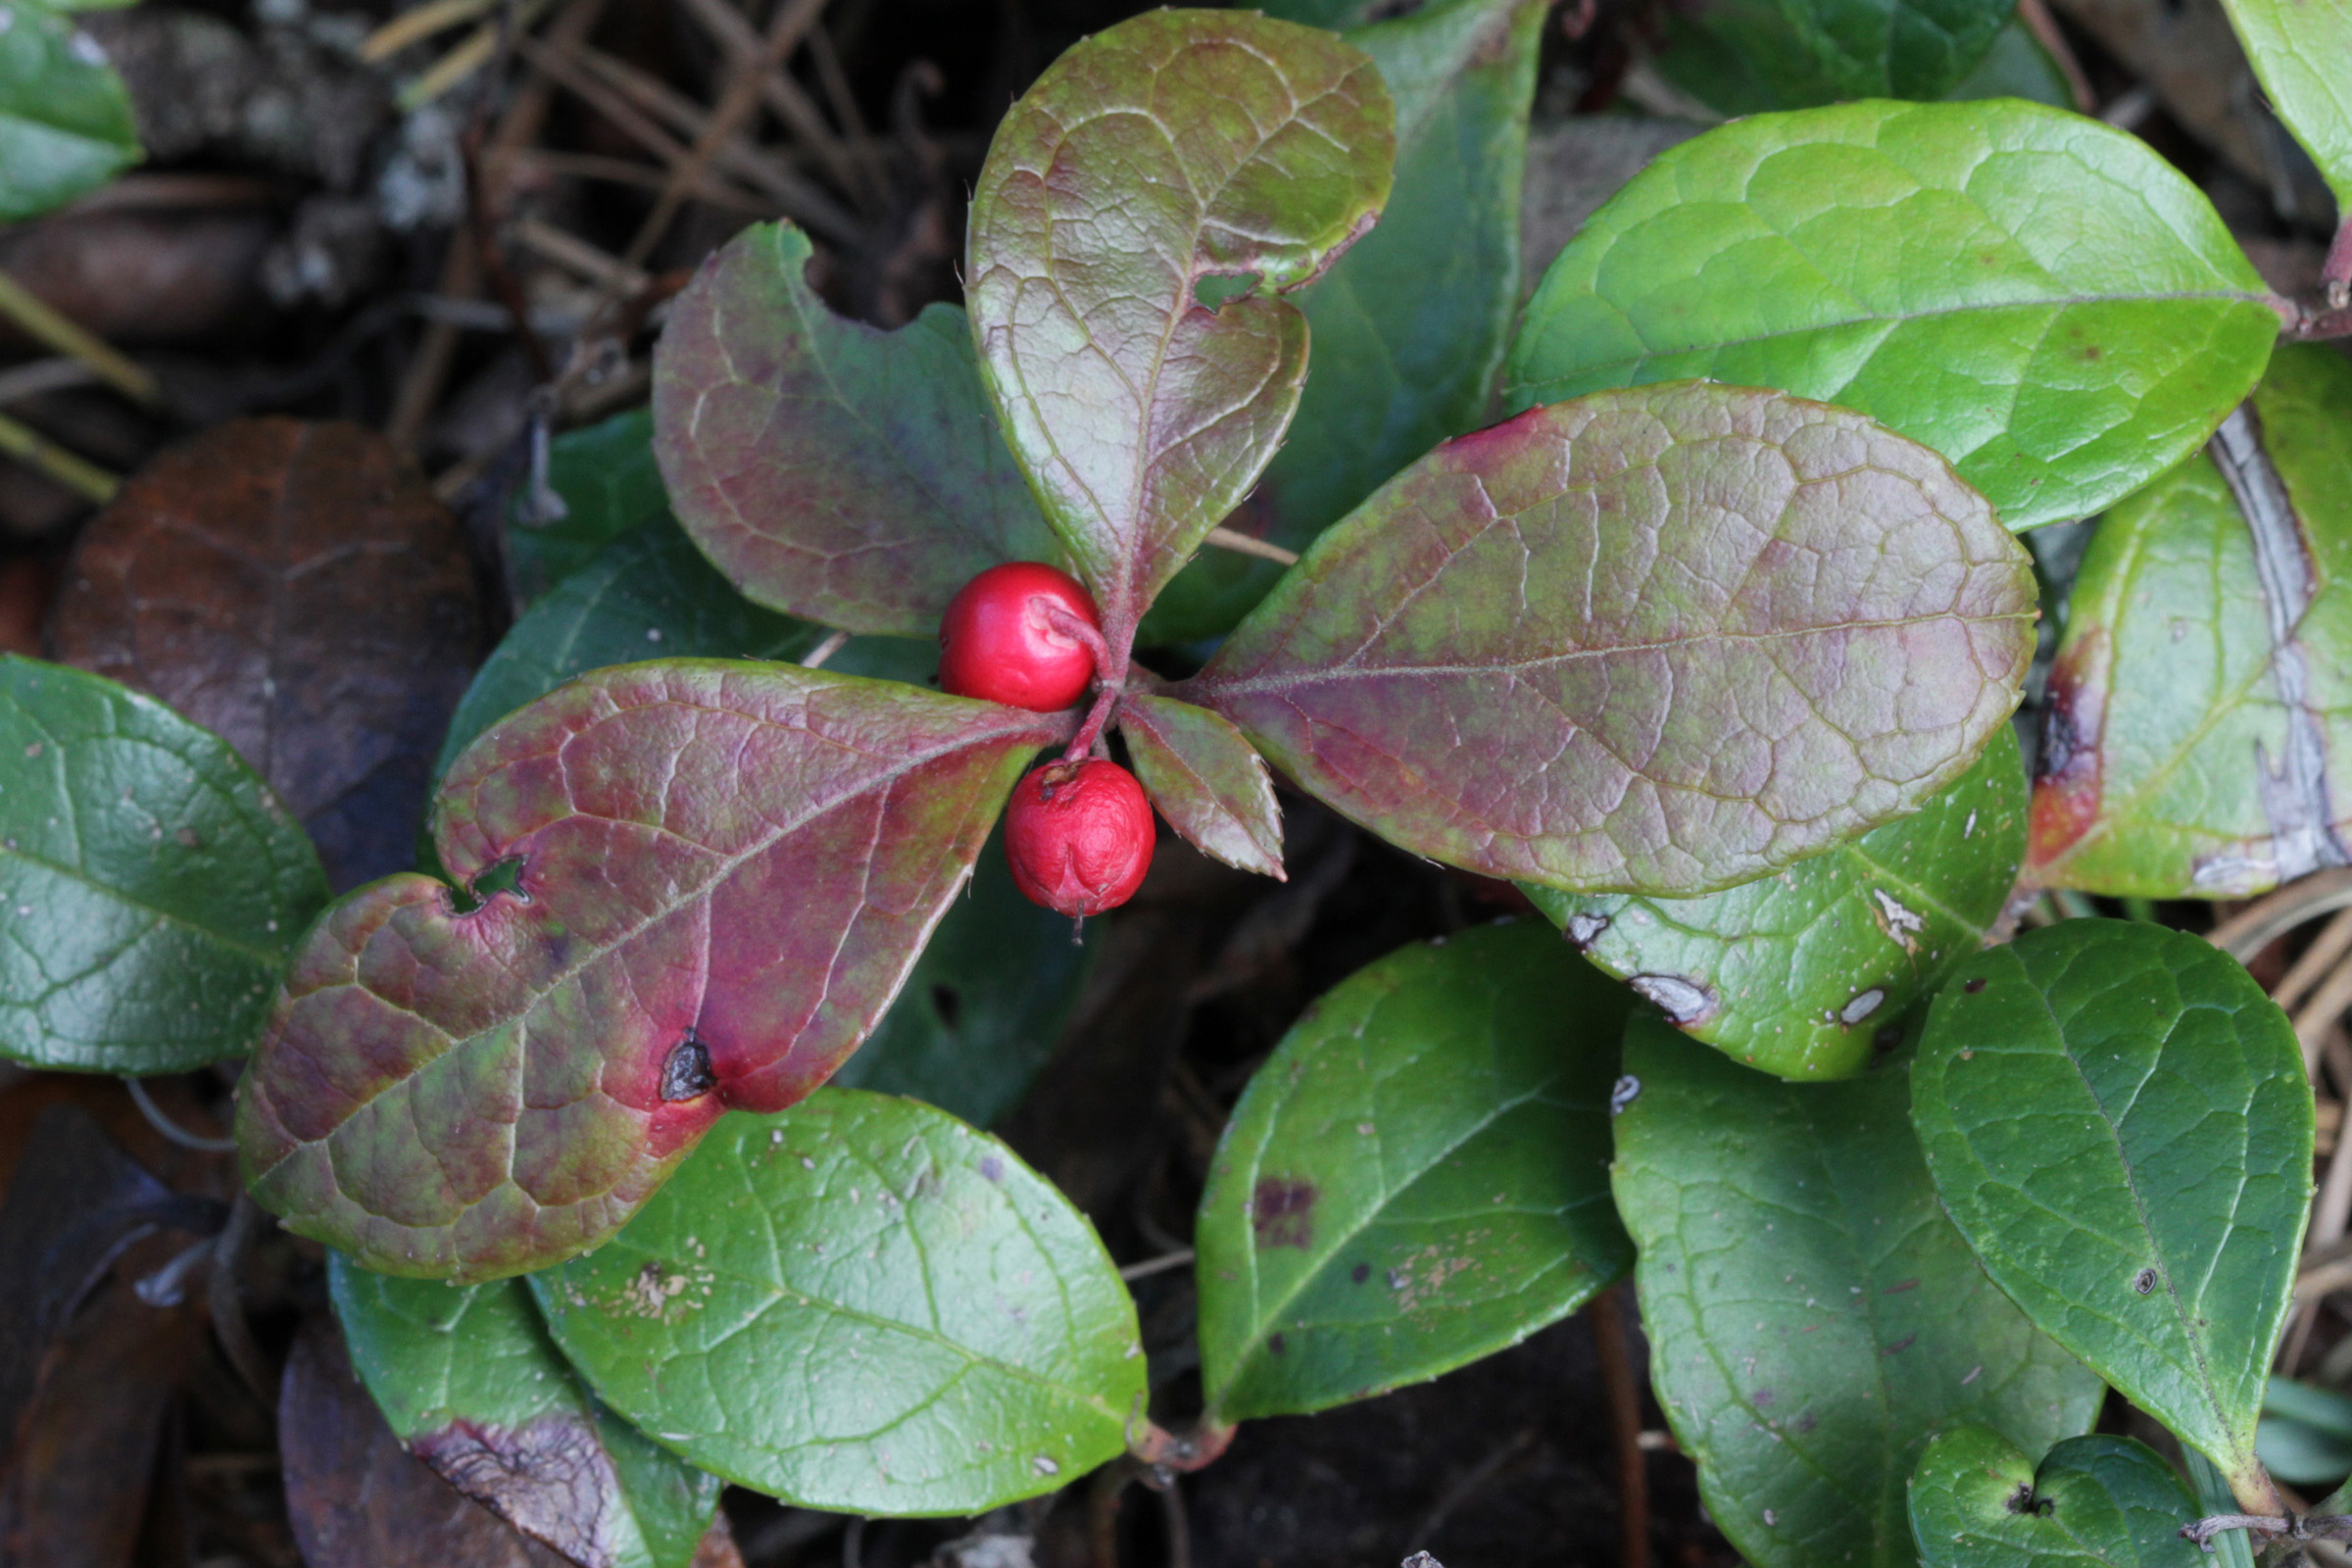 The Scientific Name is Gaultheria procumbens. You will likely hear them called Eastern Teaberry, Wintergreen, Checkerberry. This picture shows the Bright red fruits, call teaberries are edible with a distinctive wintergreen flavor. of Gaultheria procumbens